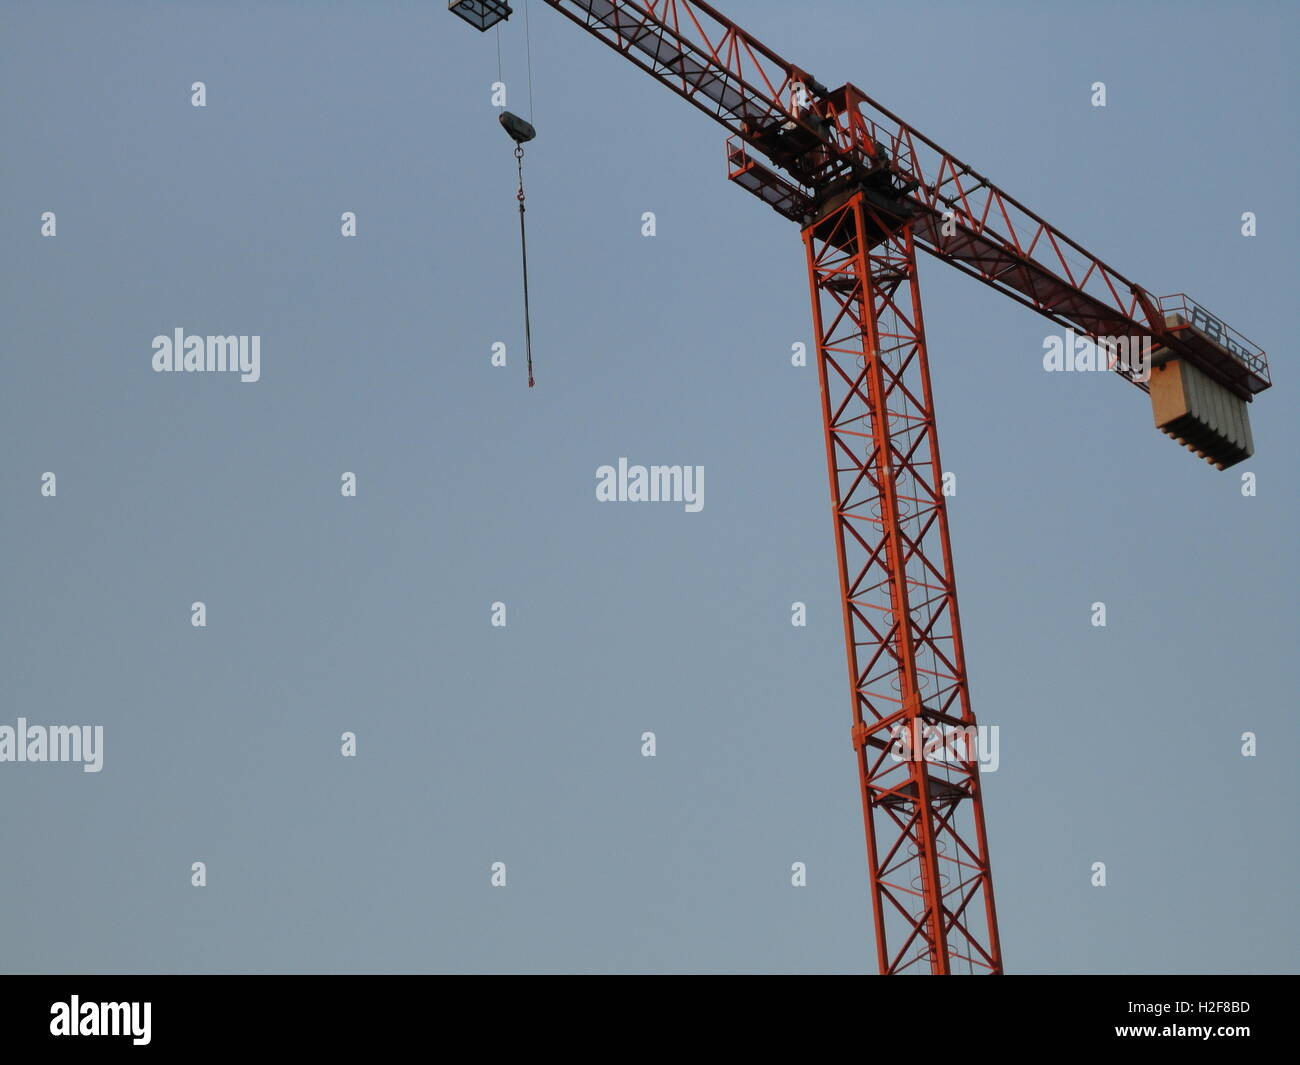 an artsy shot of an orange crane against a clear blue sky, detail - Stock Image